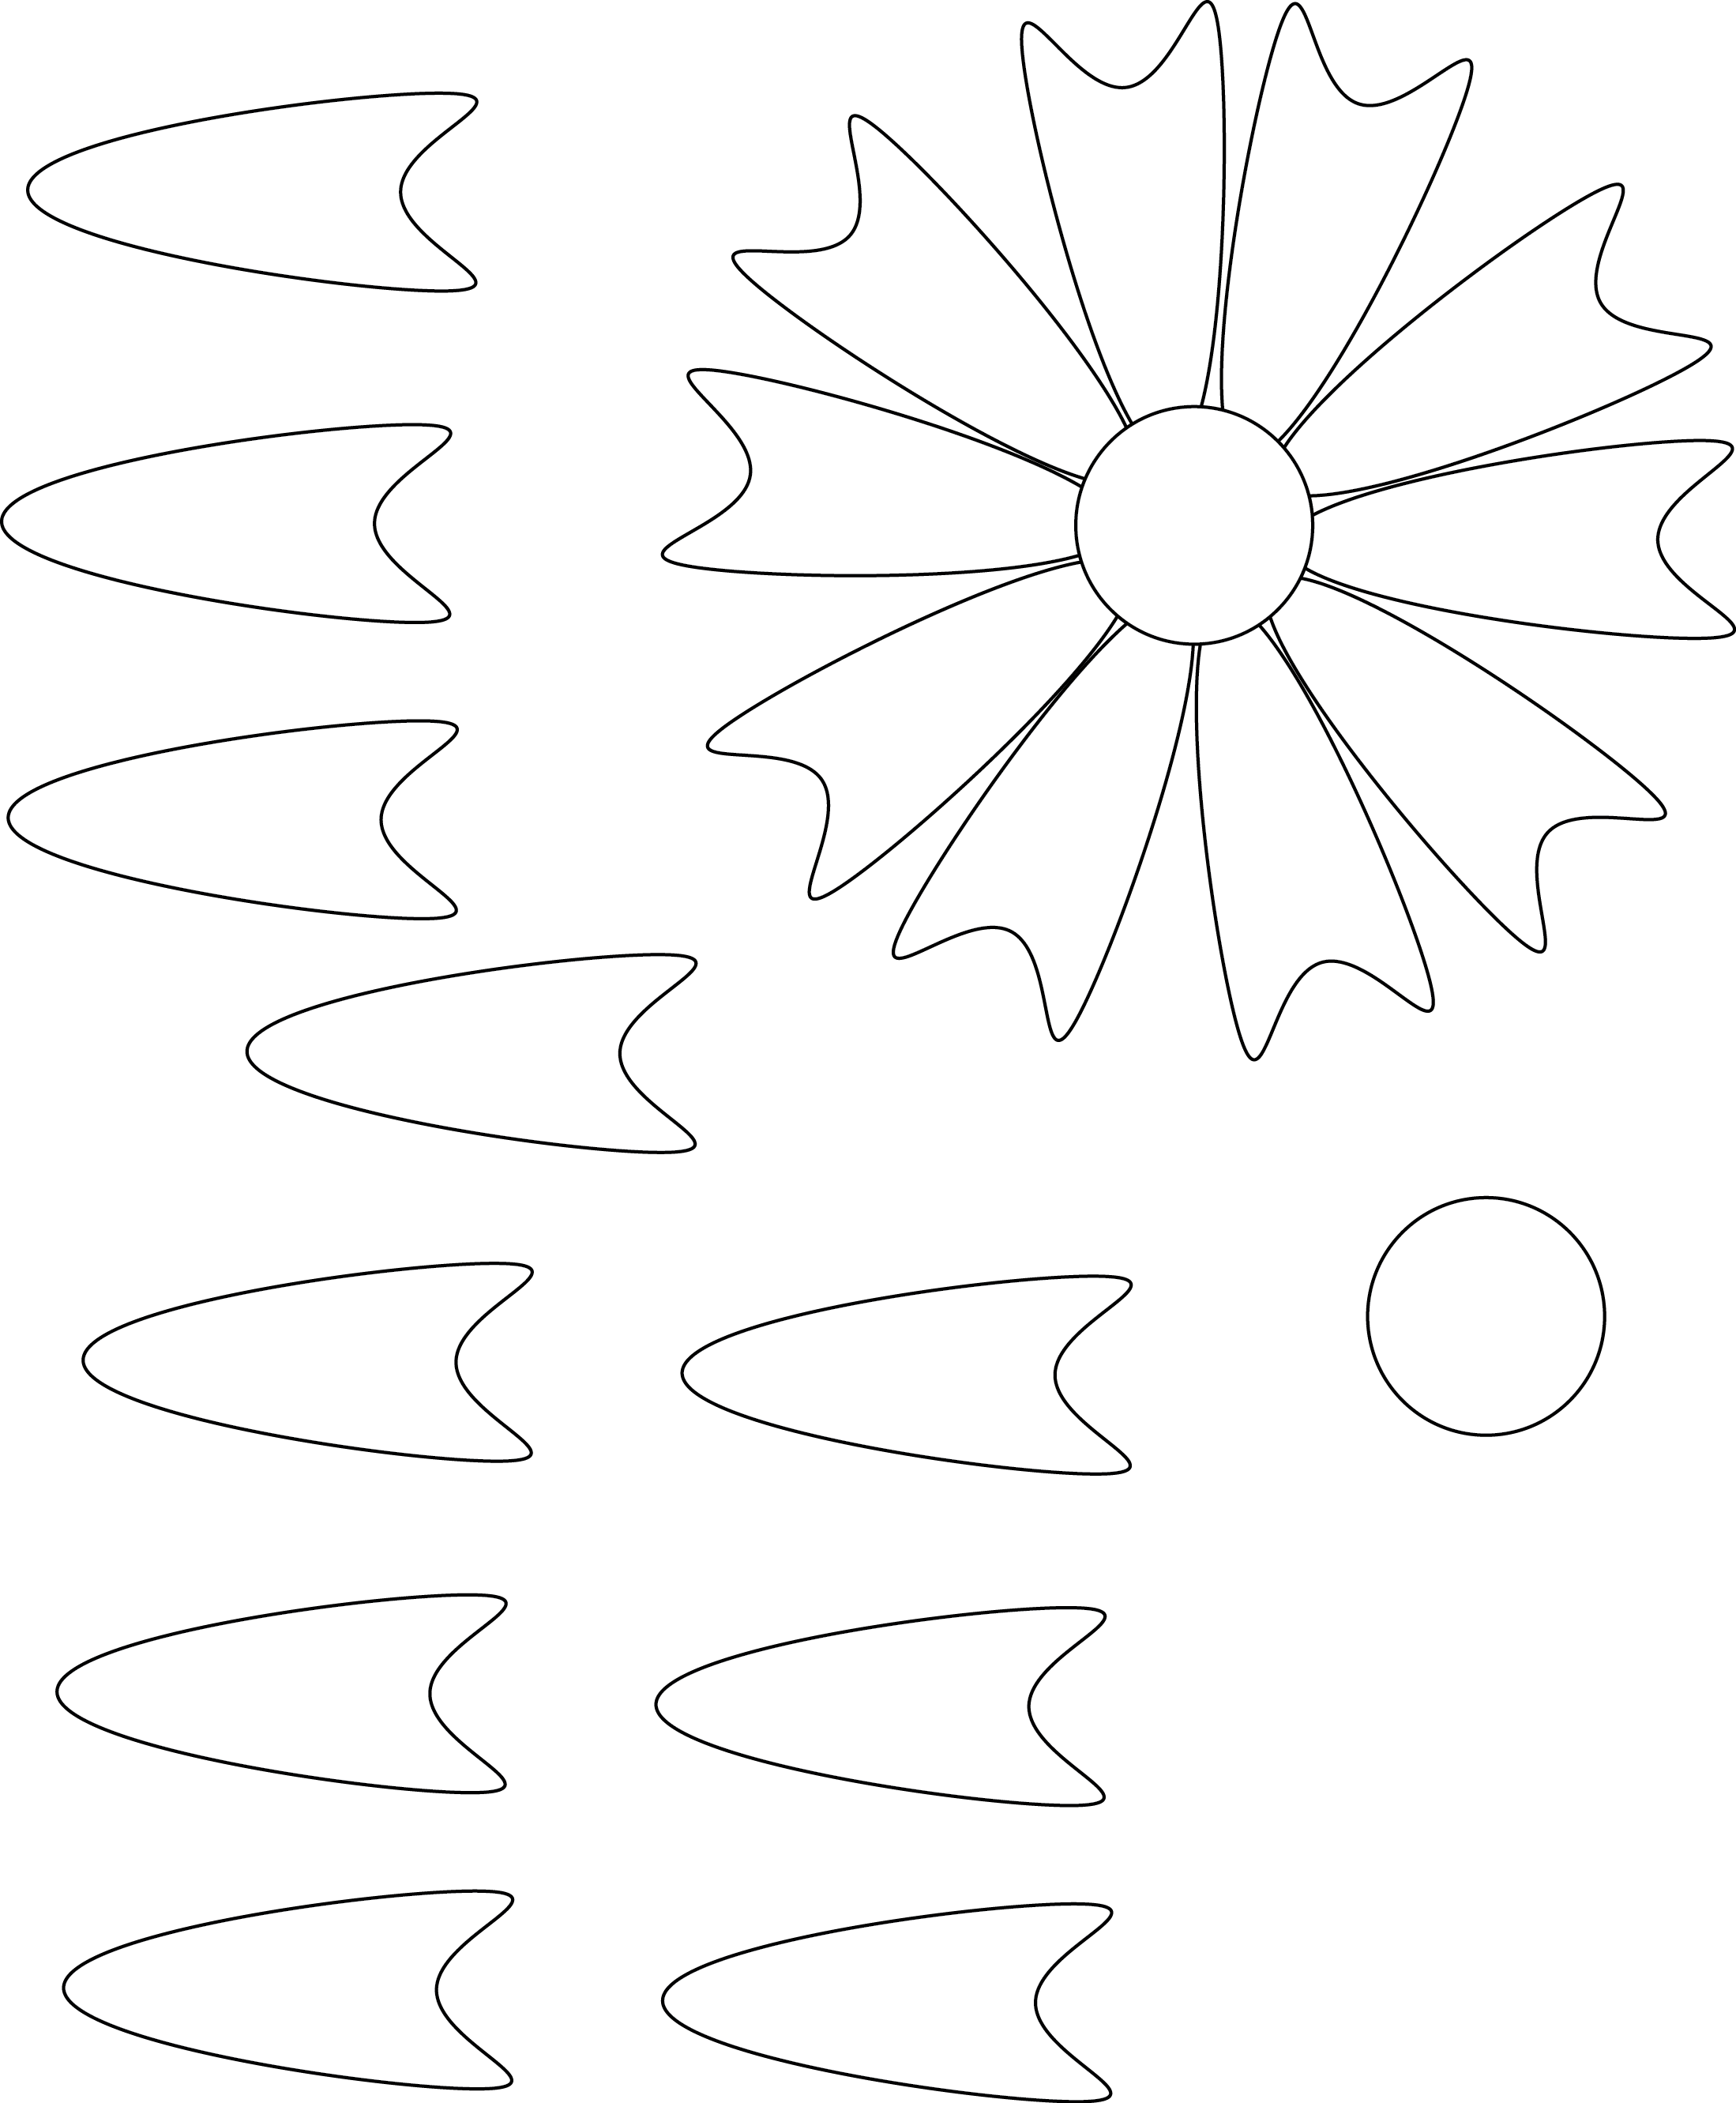 paper cut out templates flowers - sunflower template to cut out the image